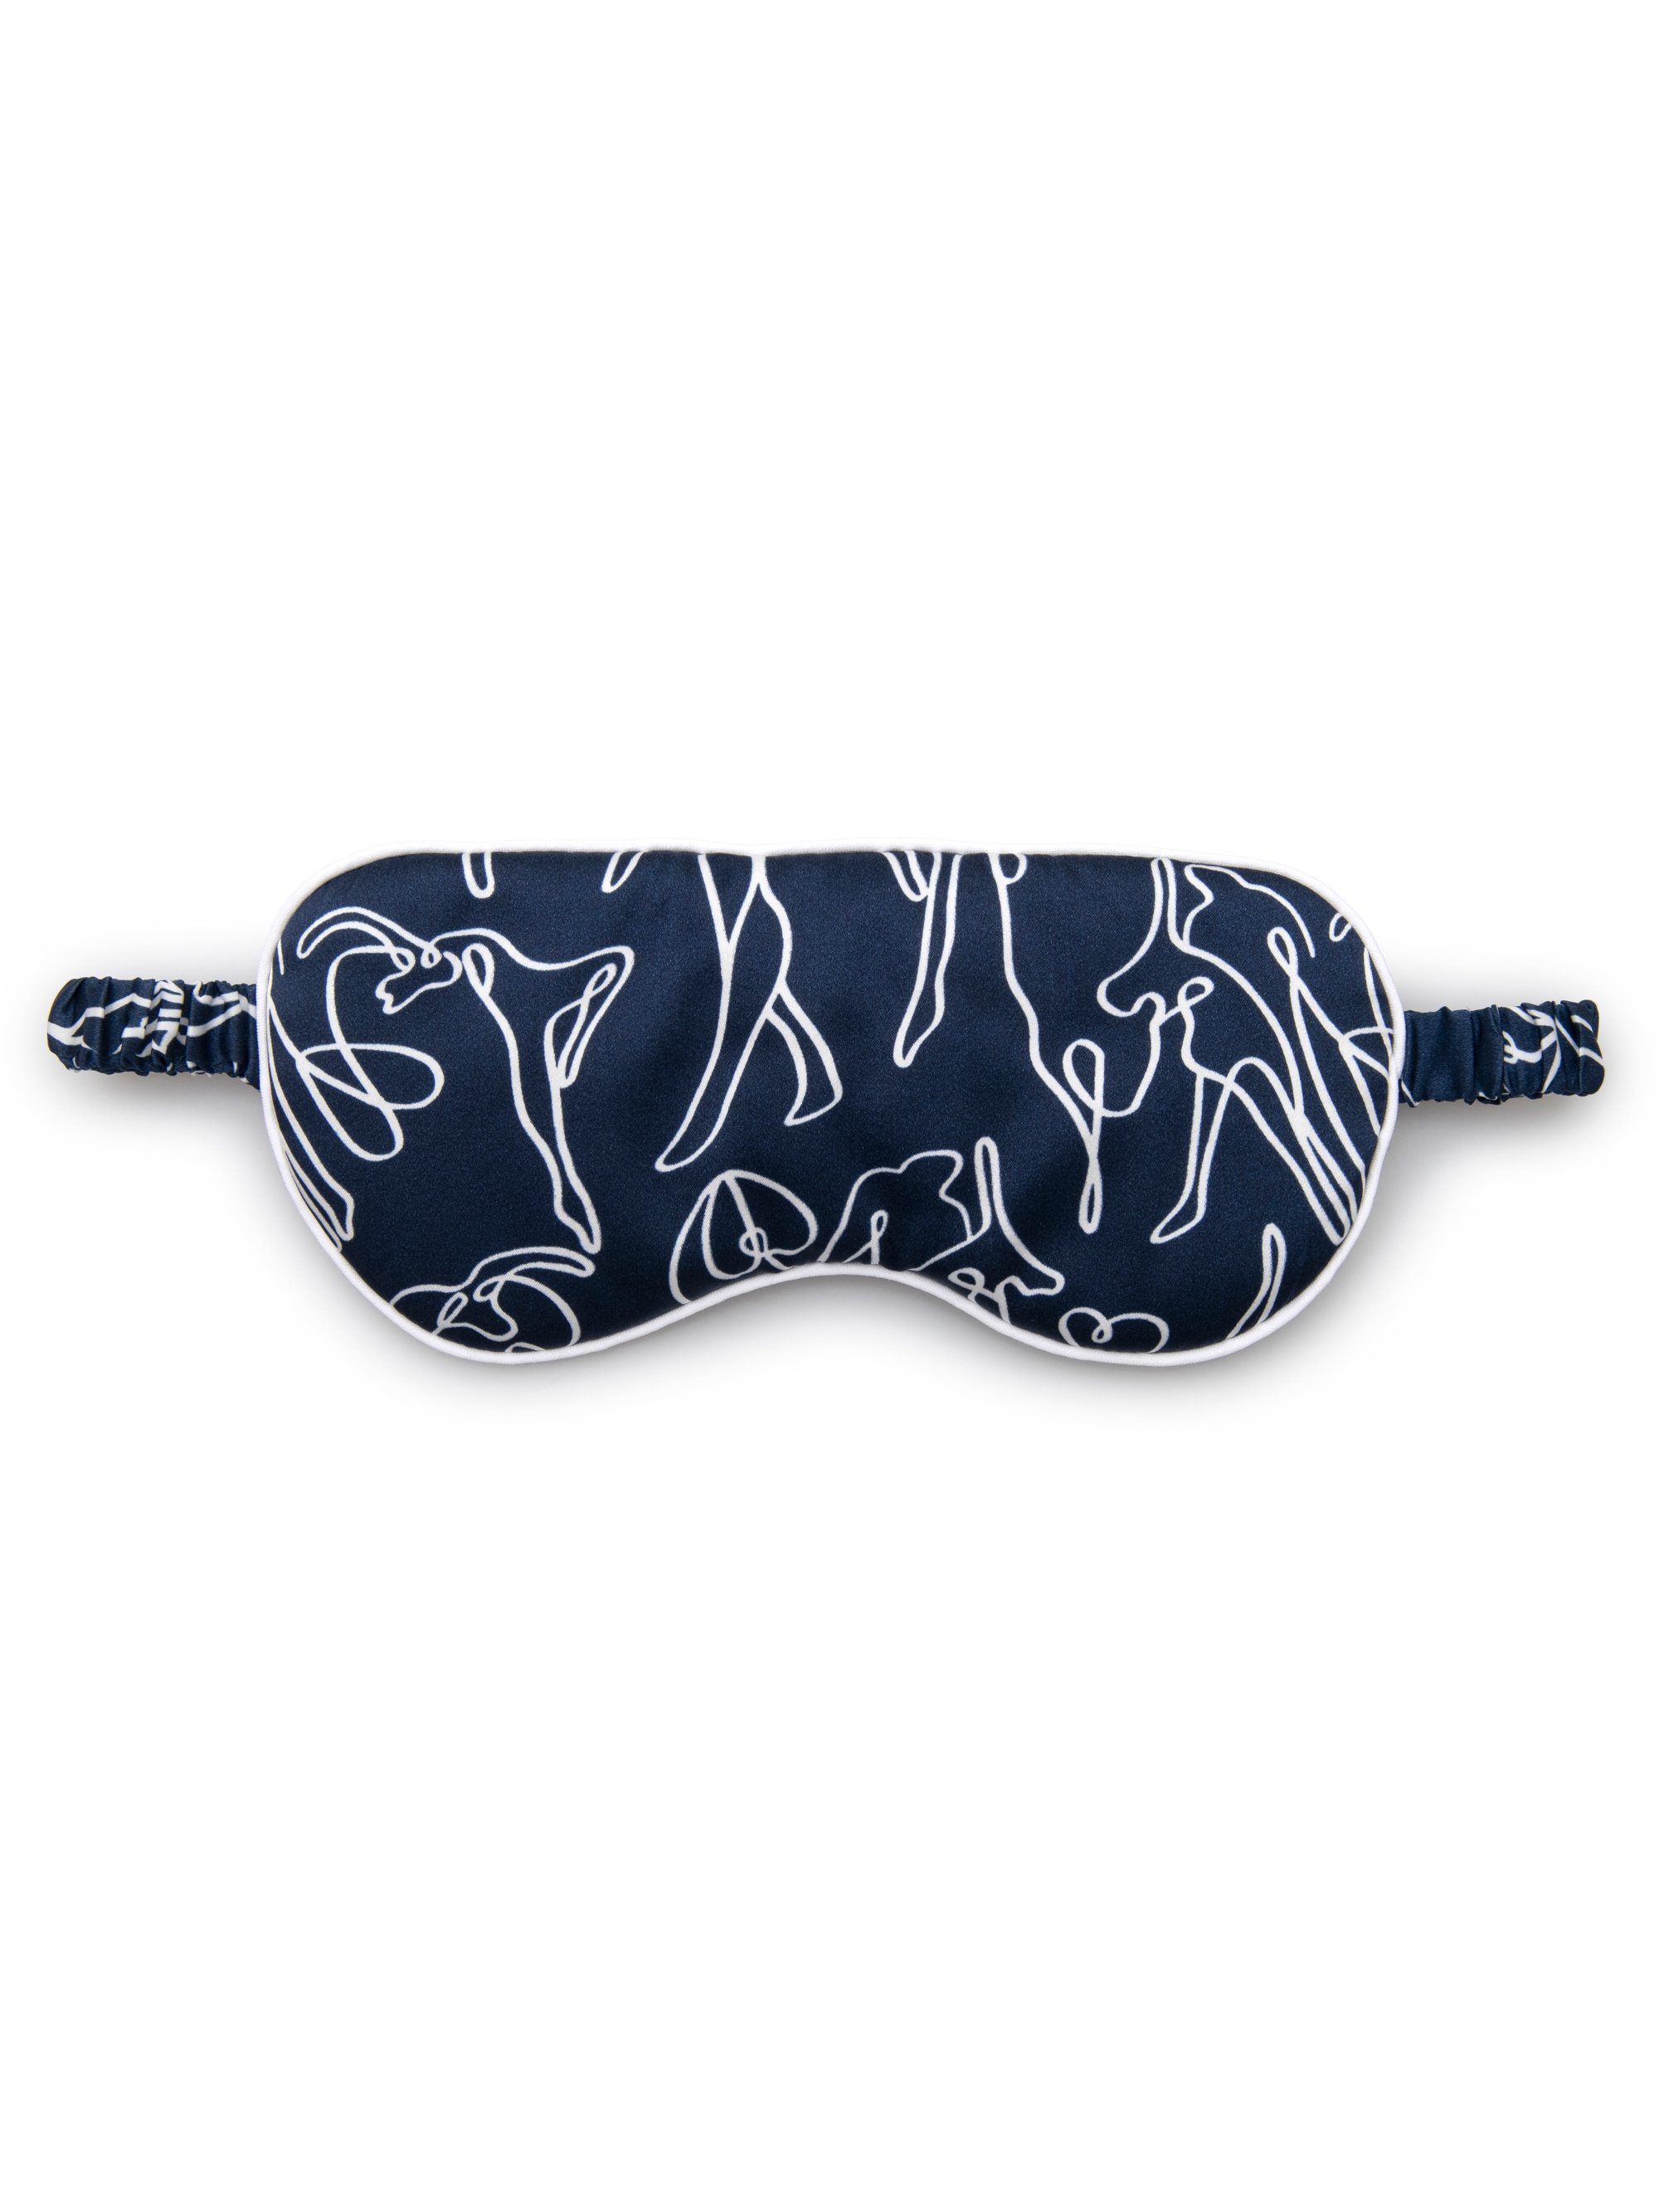 Reversible Eye Mask Brindisi 59 Pure Silk Satin Navy